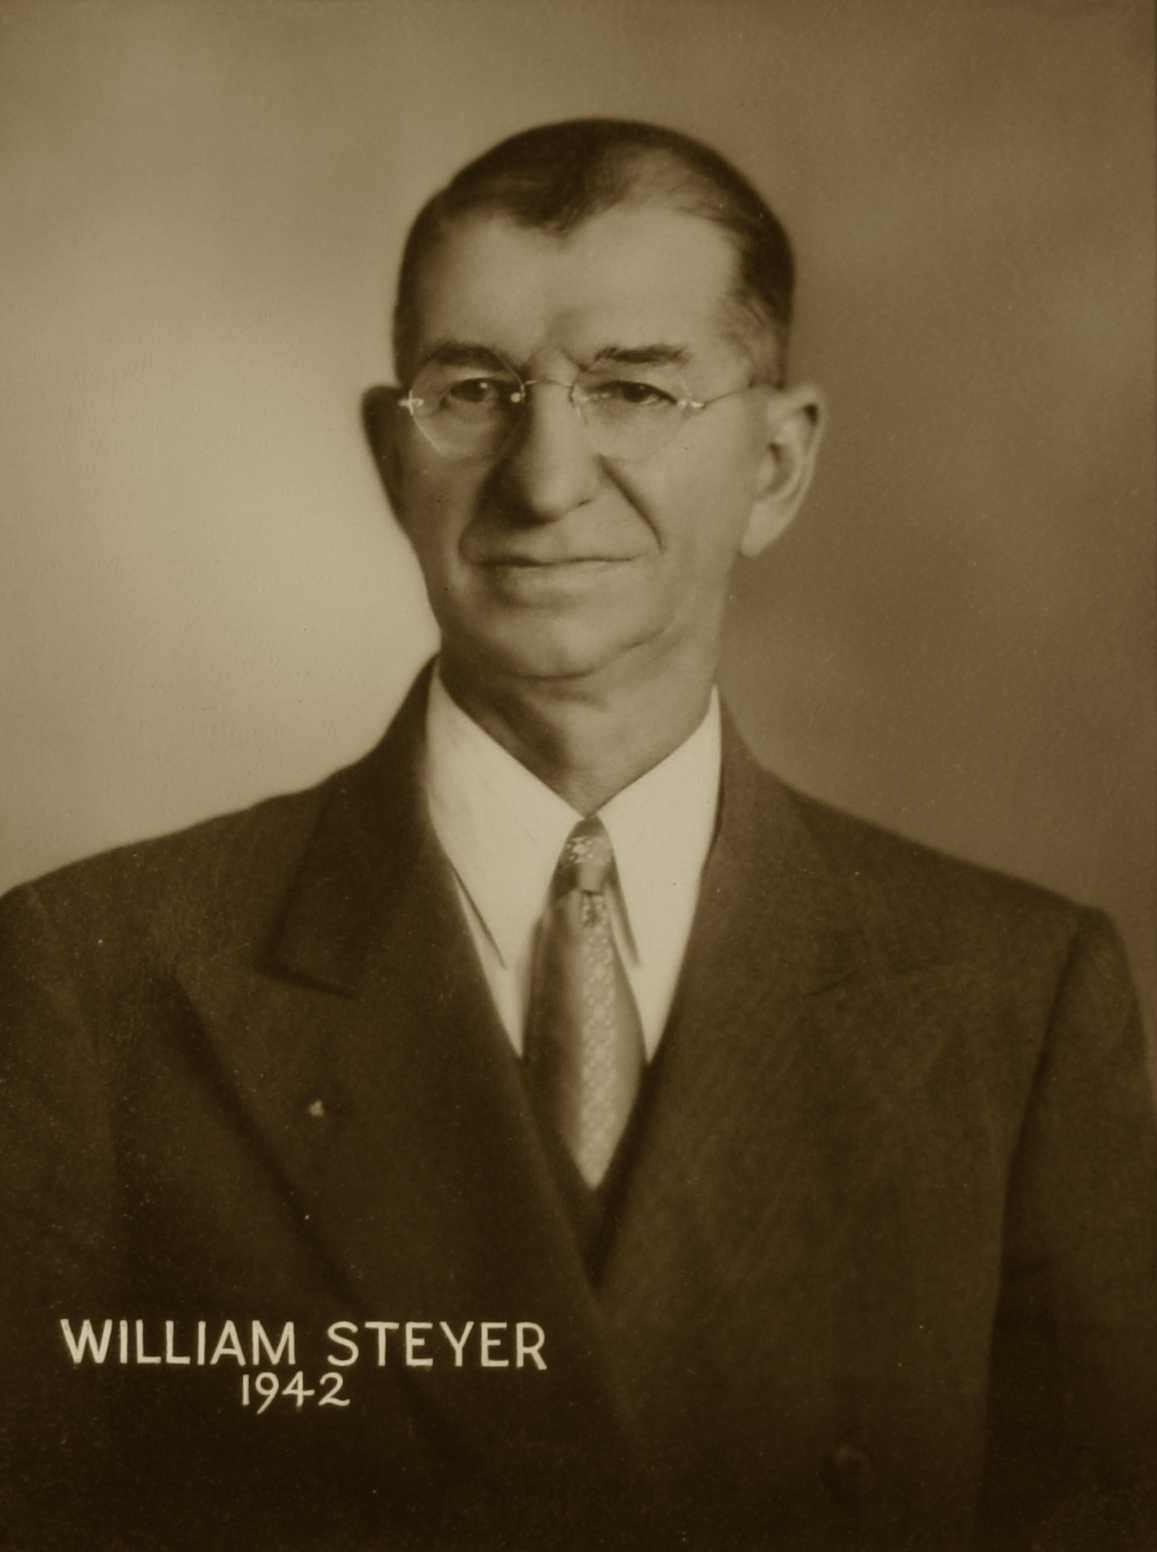 William Steyer, 1942